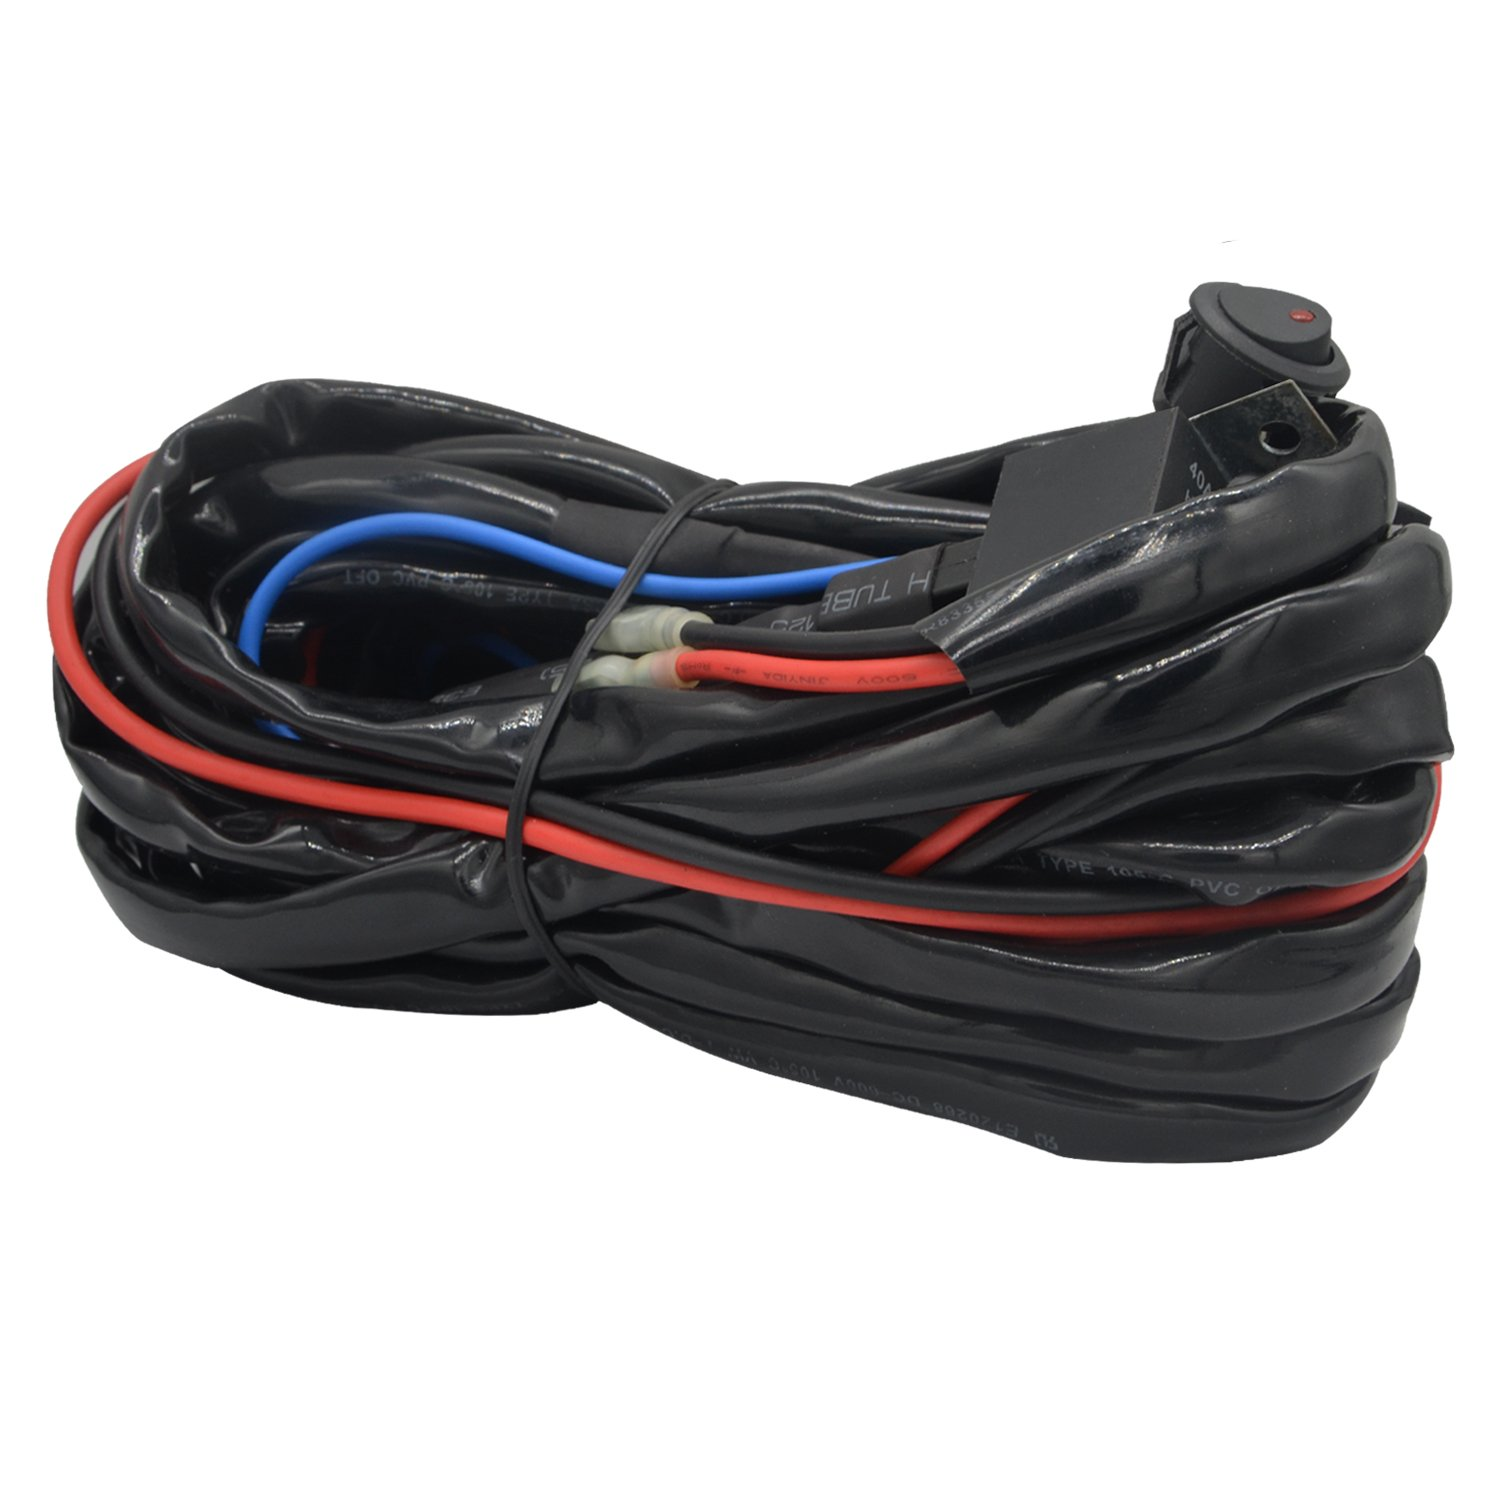 71hdbgsGjCL._SL1500_ amazon com wiring harnesses electrical automotive ksc-wa100 wiring harness at aneh.co